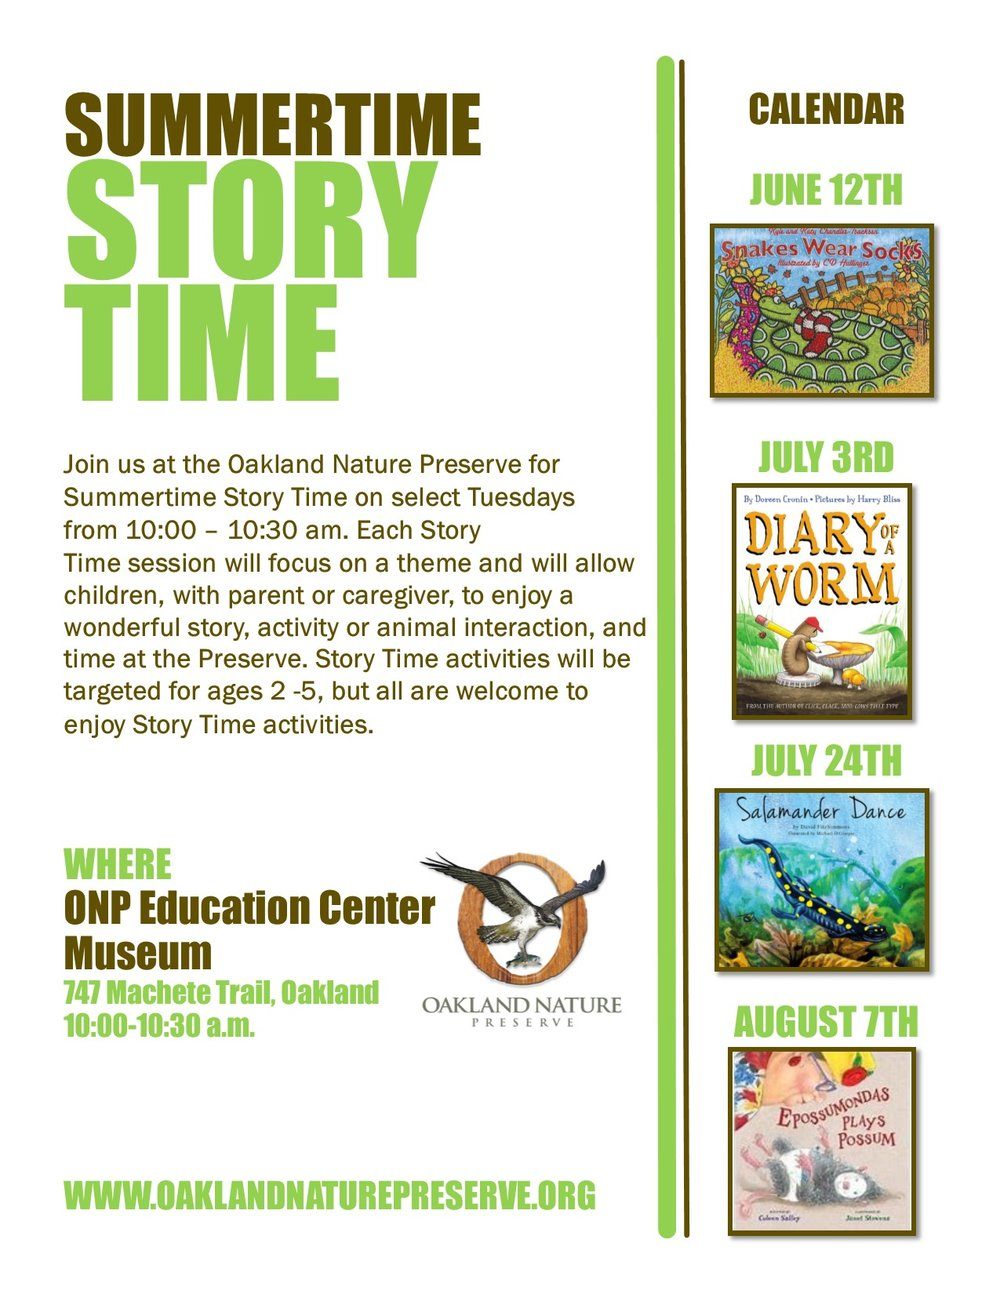 Please join us for this new summer program. - Summertime Story Time is offered free of charge but donations are gratefully appreciated and help to support future programs.Please use the form located below to let us know you will be joining in on the fun.